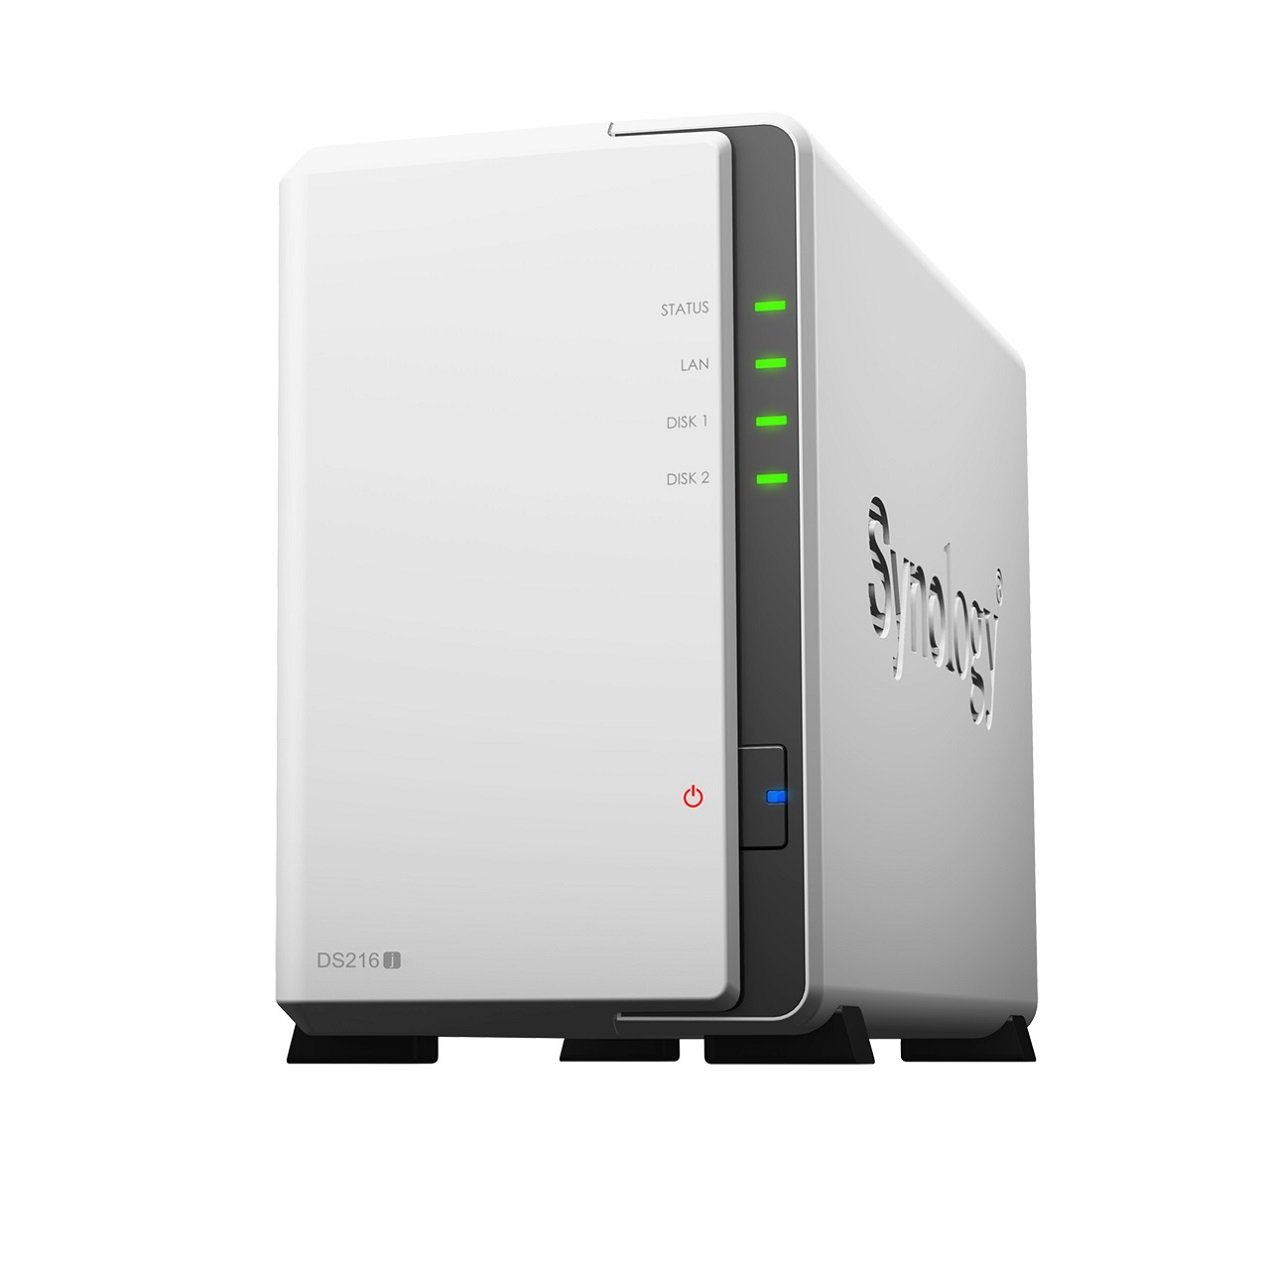 Synology , DS216j- Dispositivo de almacenamiento en red